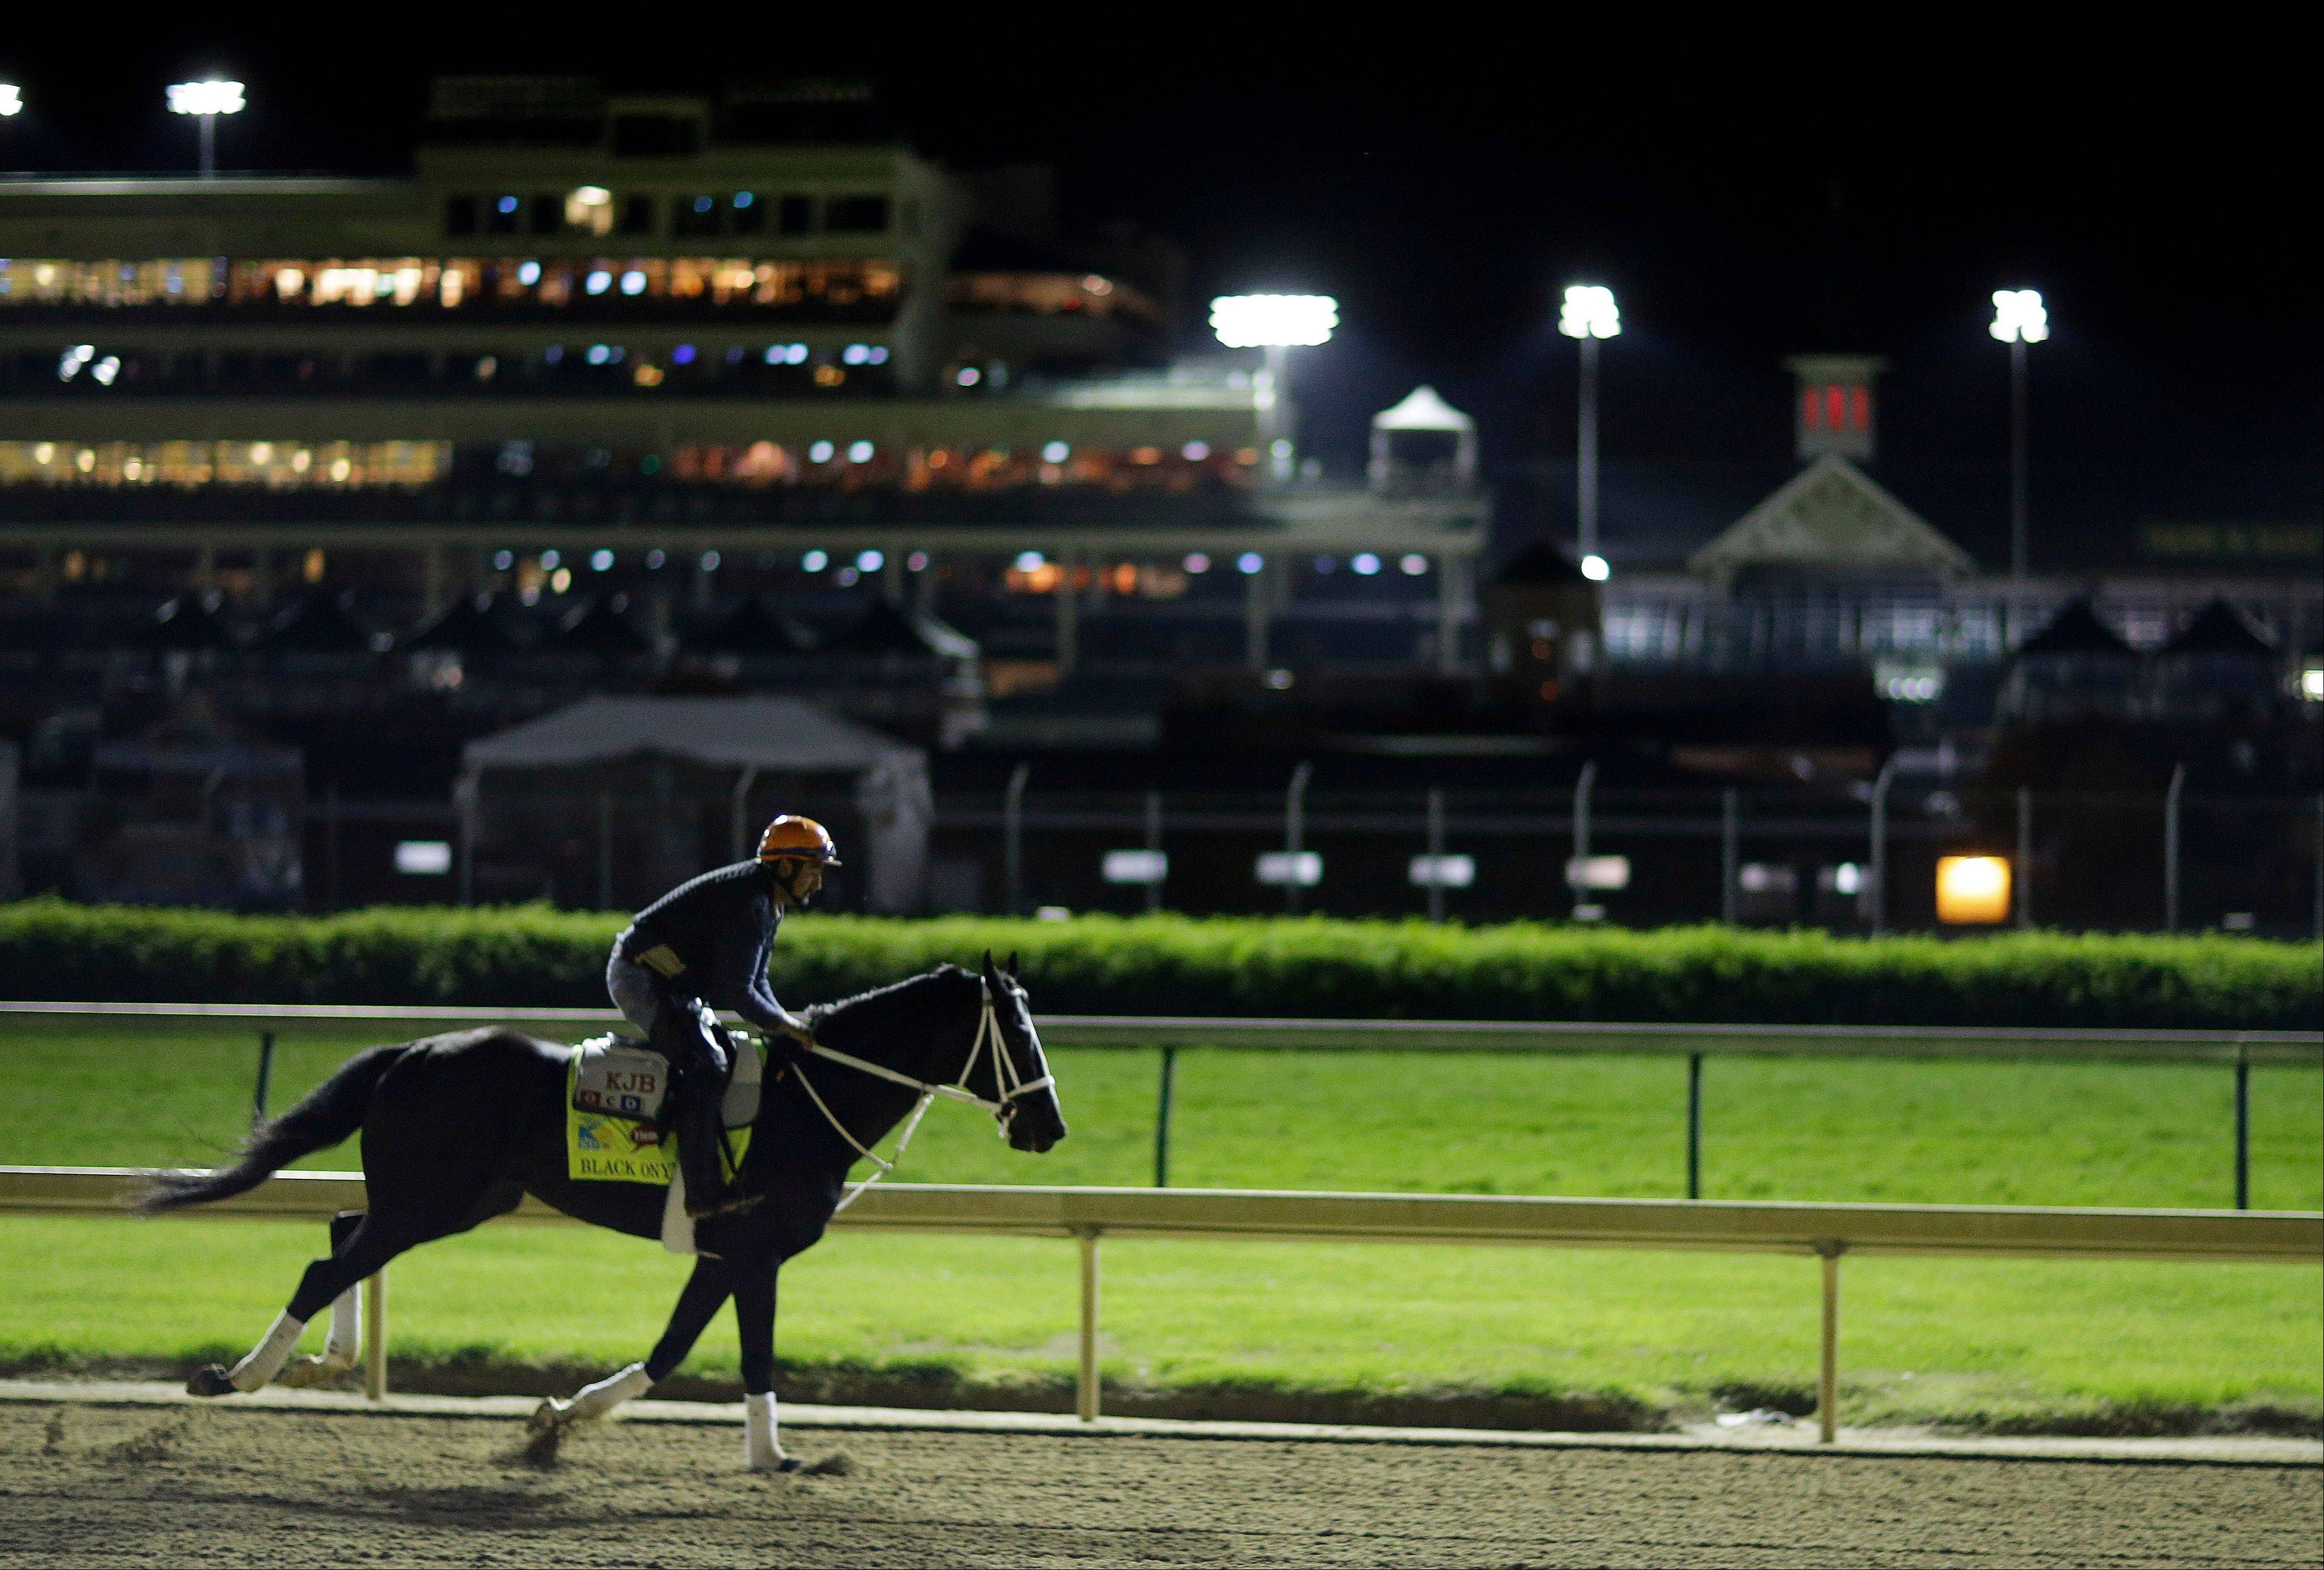 Kentucky Derby entrant Black Onyx goes for a morning workout at Churchill Downs Friday in Louisville, Ky. Black Onyx was later scratched from the Kentucky Derby.